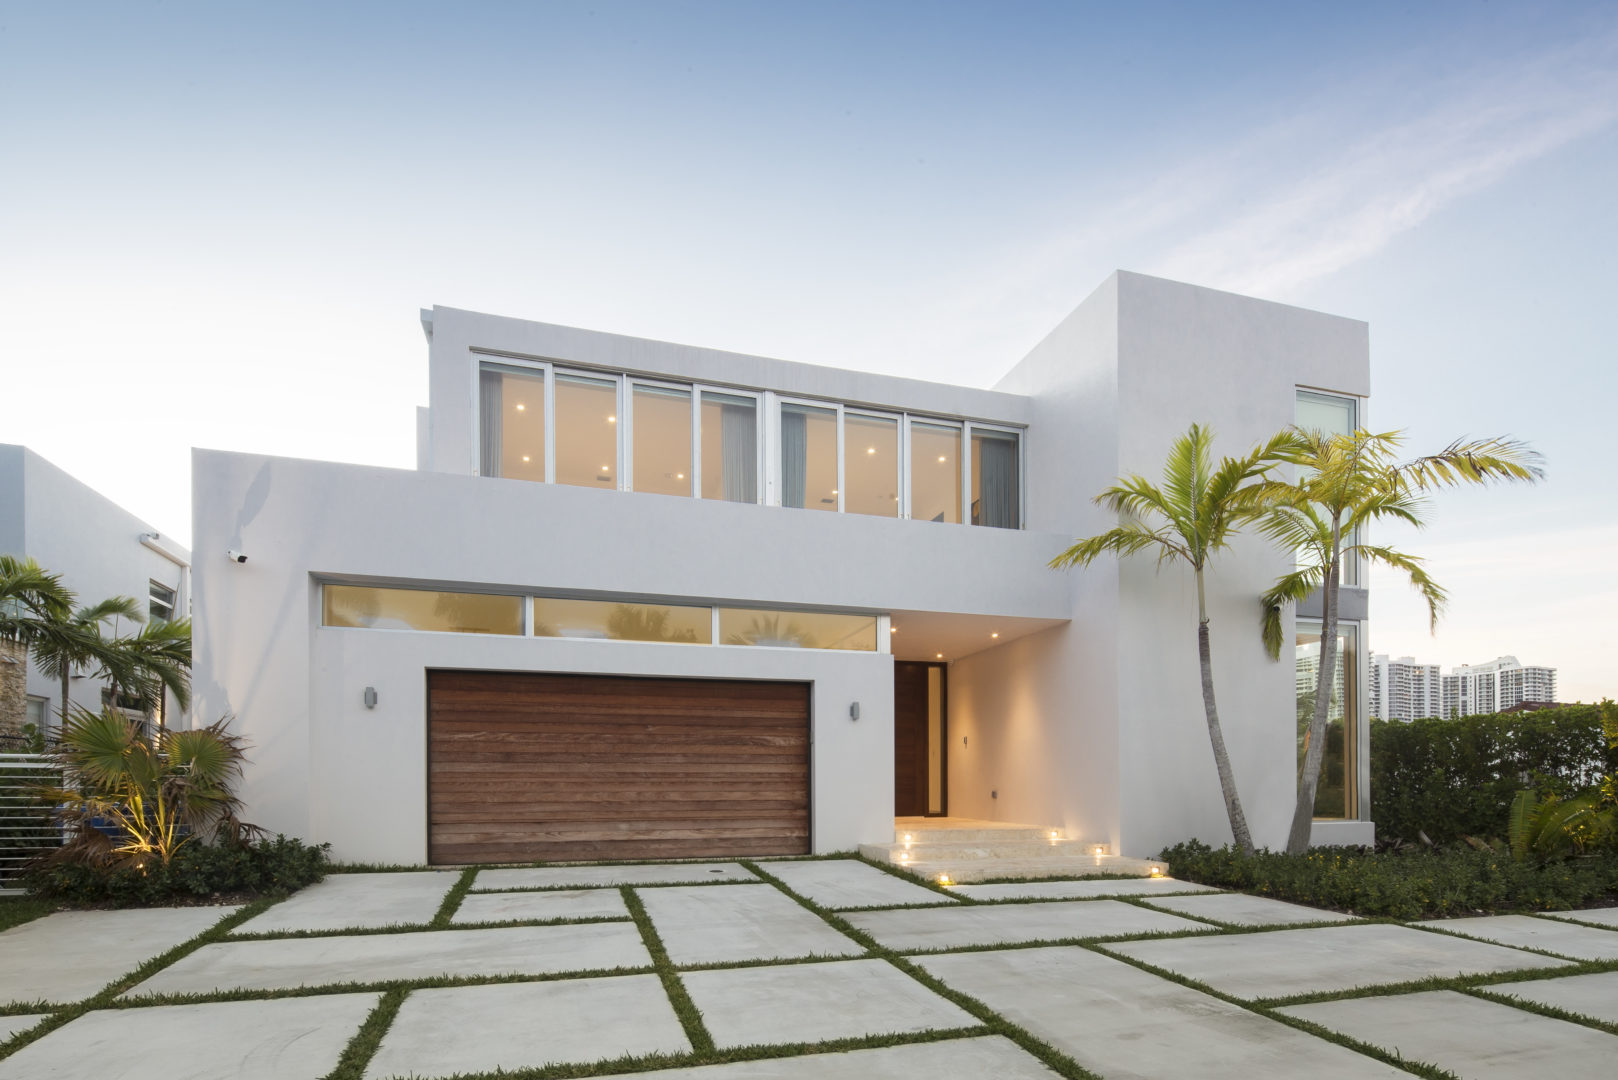 Golden Beach house modern luxury high-end miami contractor builder driveway concrete landscape wood